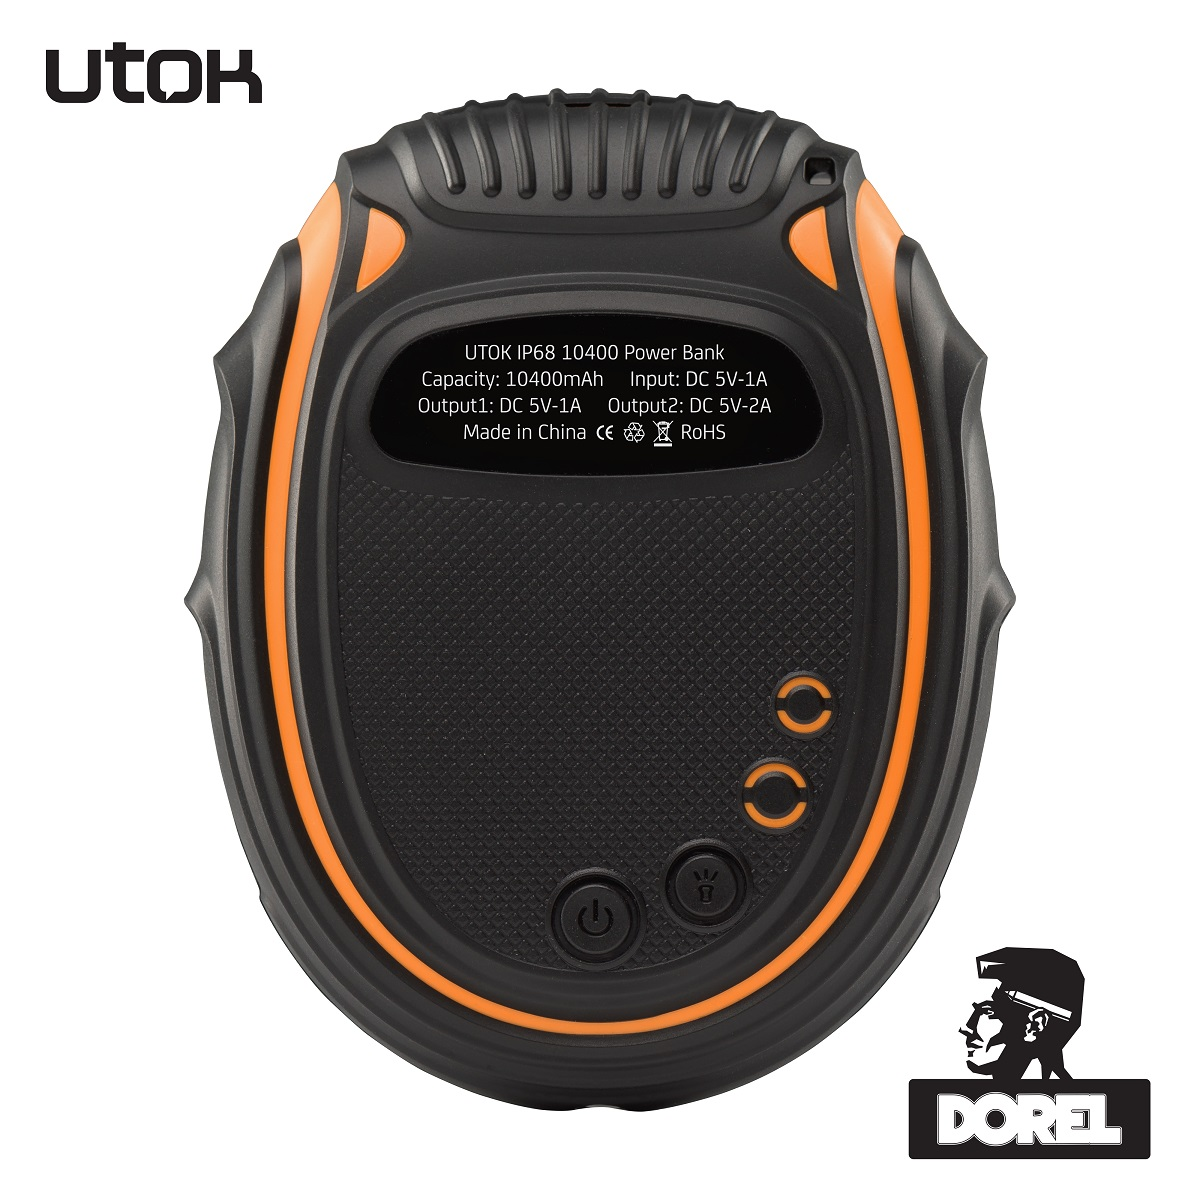 utok_dorel_rugged_power_bank_2 UTOK Dorel Rugged Power Bank are parte de pret special, reducere de 50%